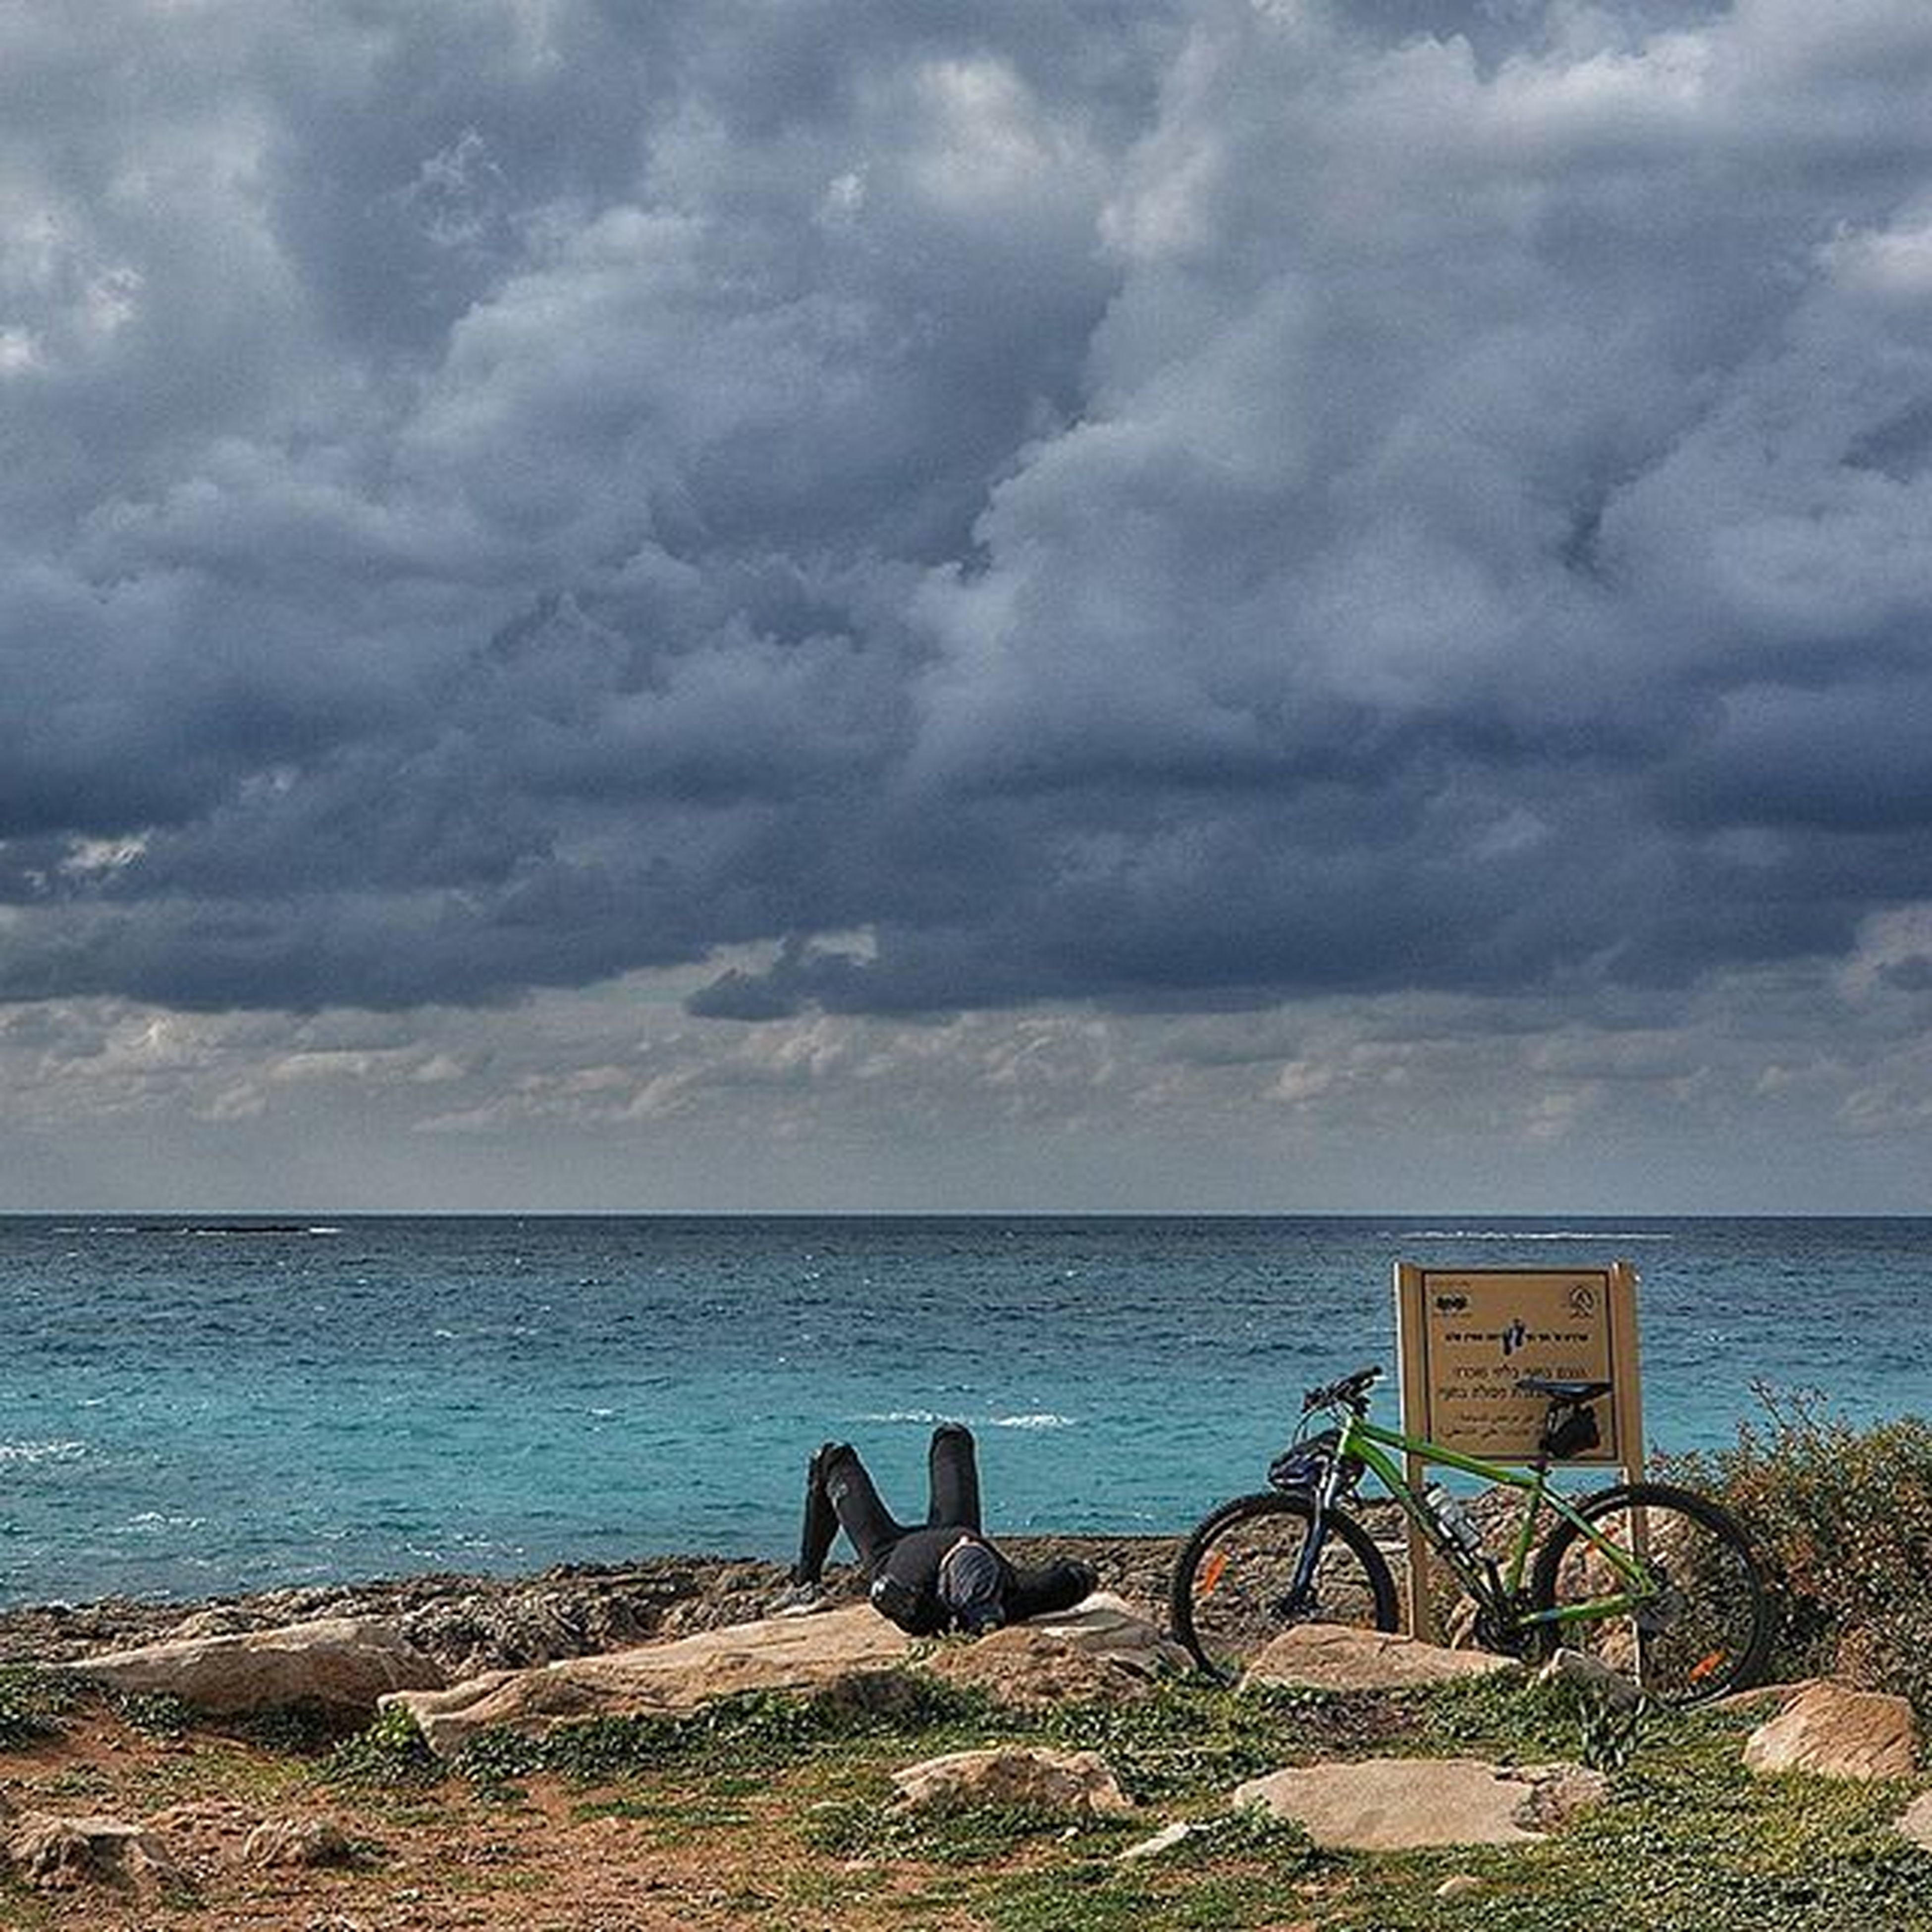 sea, sky, horizon over water, cloud - sky, water, cloudy, beach, tranquility, scenics, tranquil scene, shore, beauty in nature, nature, weather, cloud, overcast, idyllic, storm cloud, outdoors, no people